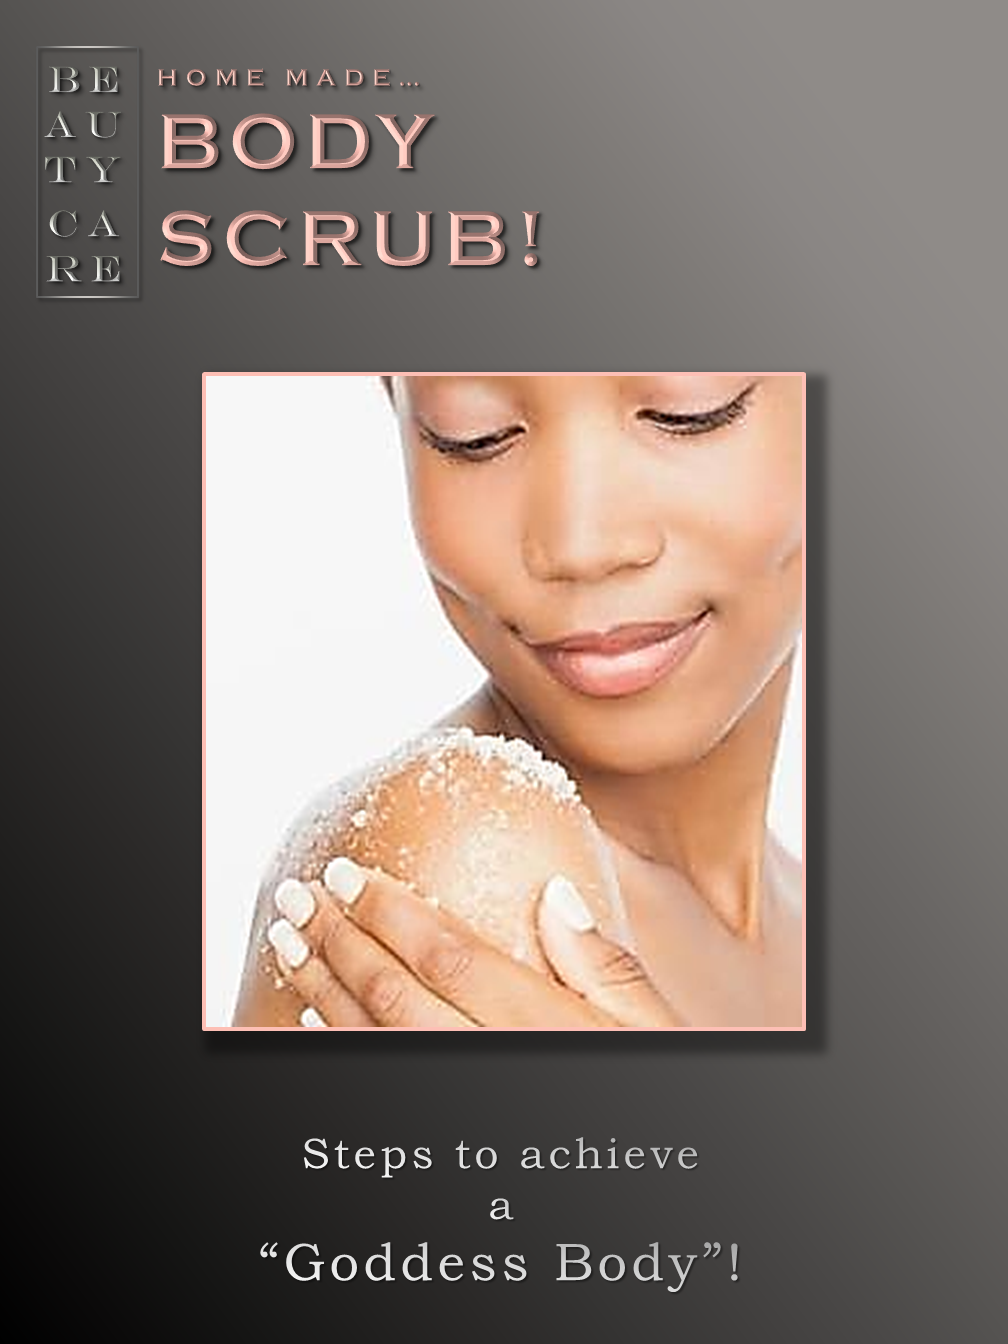 Body Scrub!